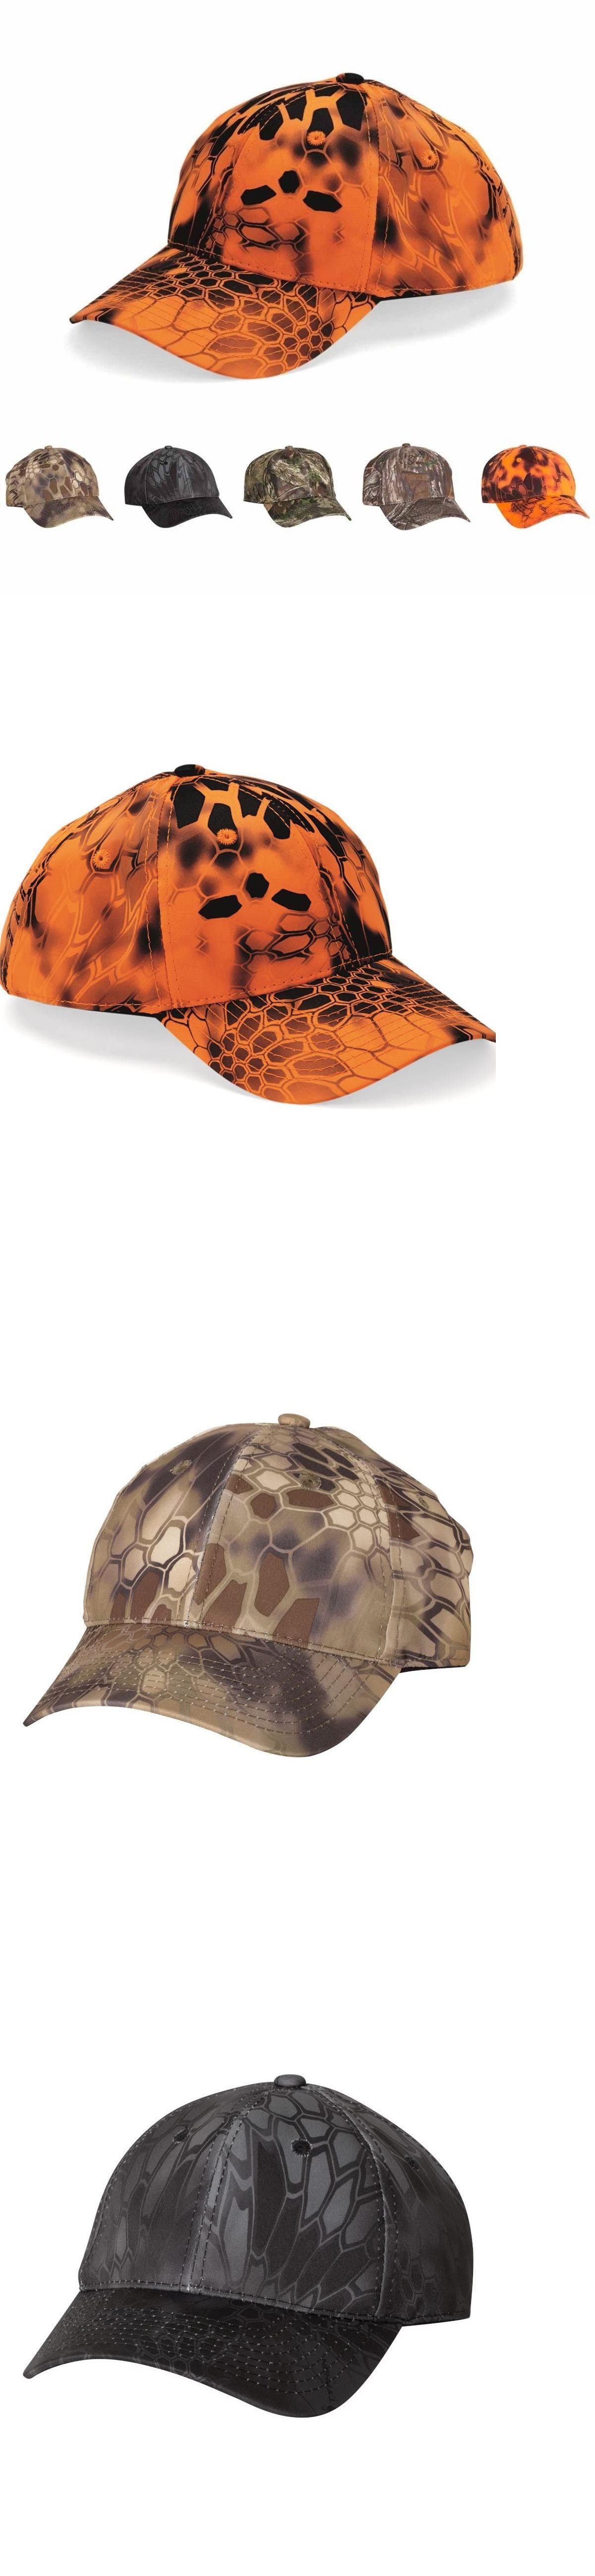 Clothing Shoes and Accessories 36239  Outdoor Cap New Realtree ... 0ded85f1f1d2